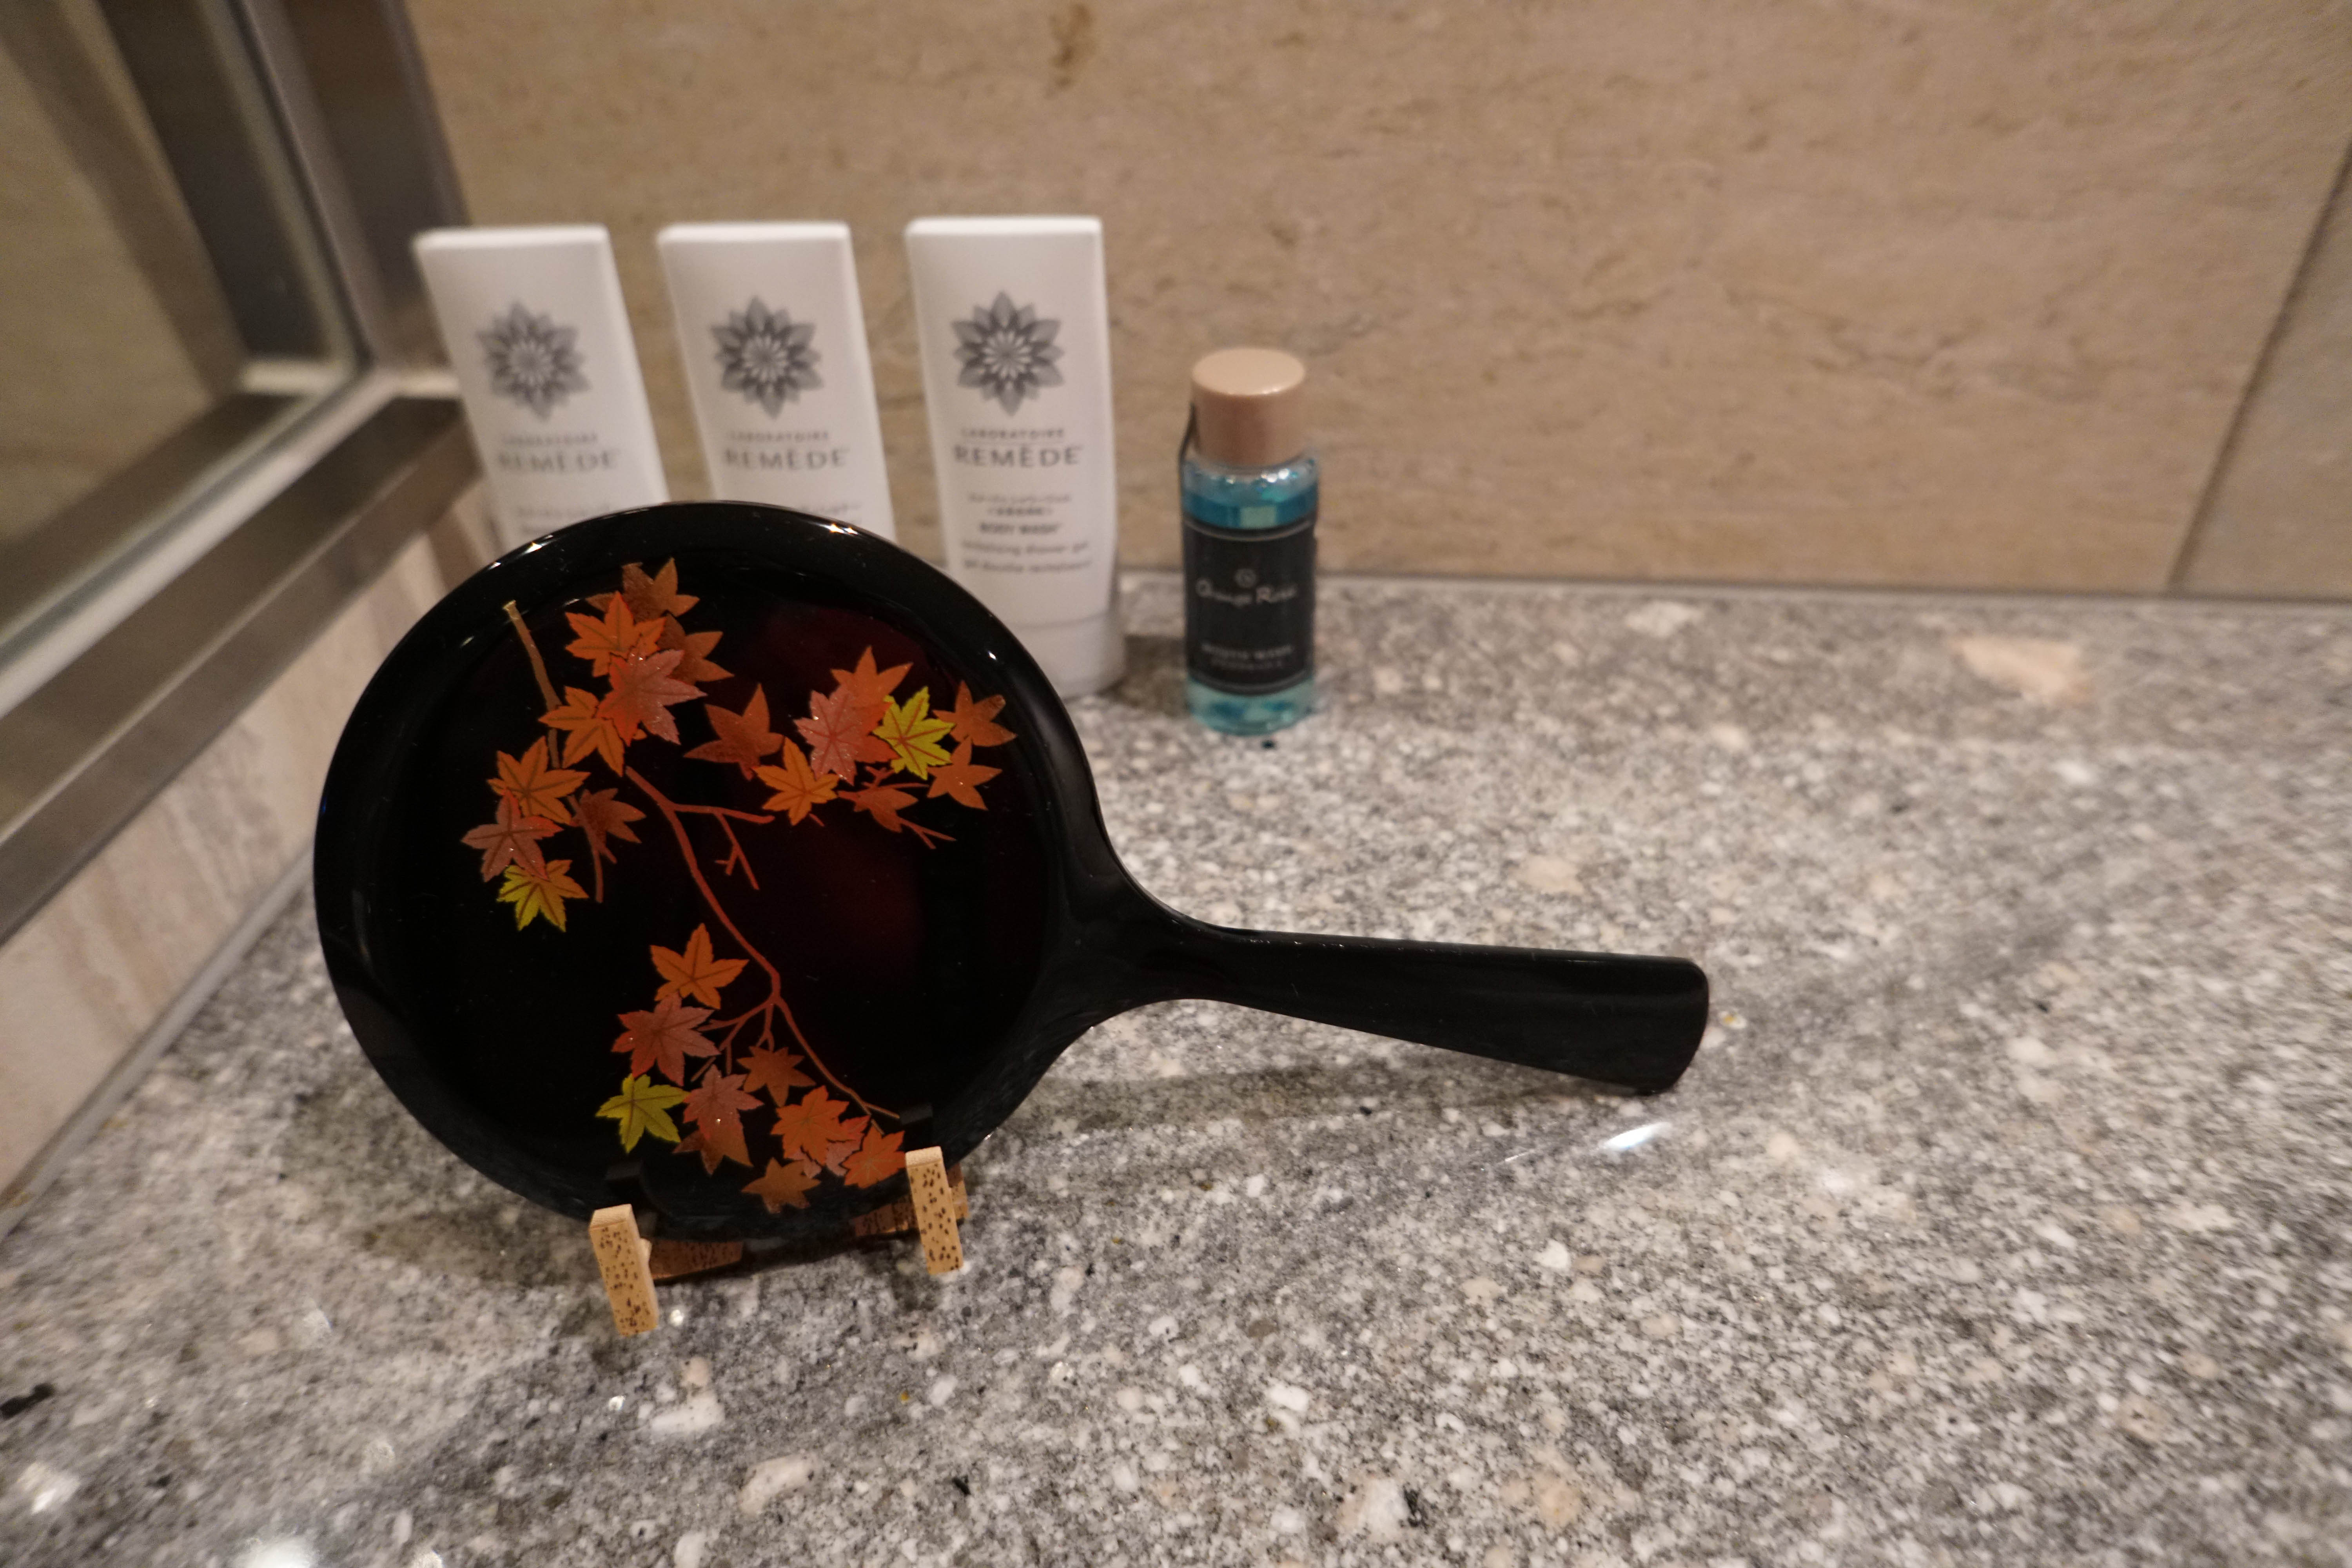 decorative mirror in the bathroom with fall leaves